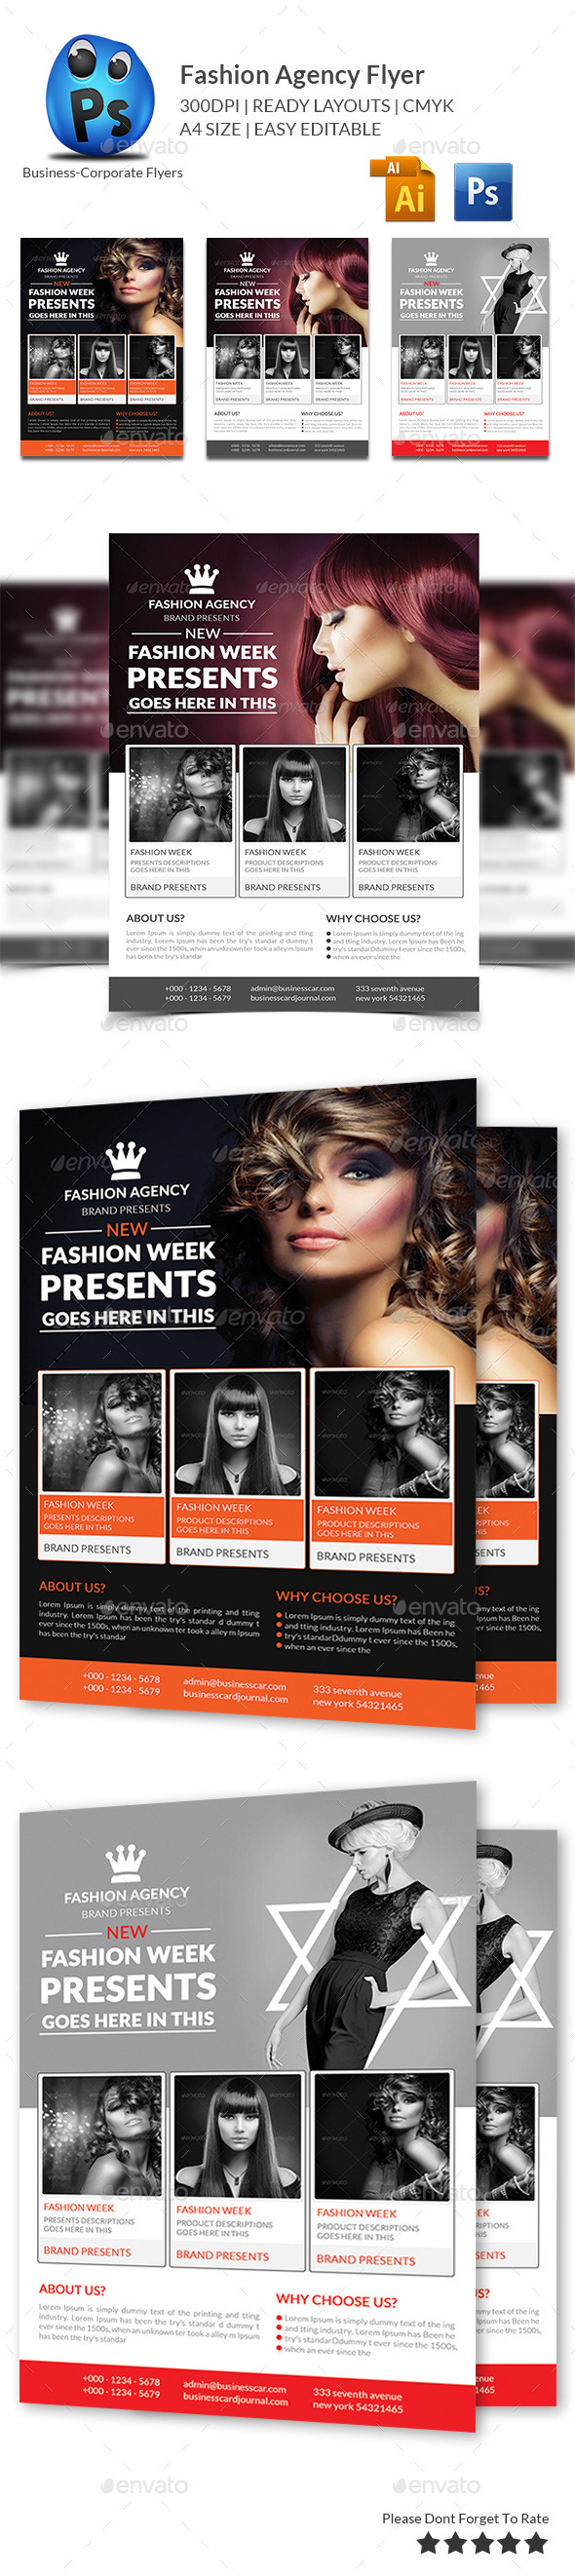 Fashion Agency Flyer - Commerce Flyers